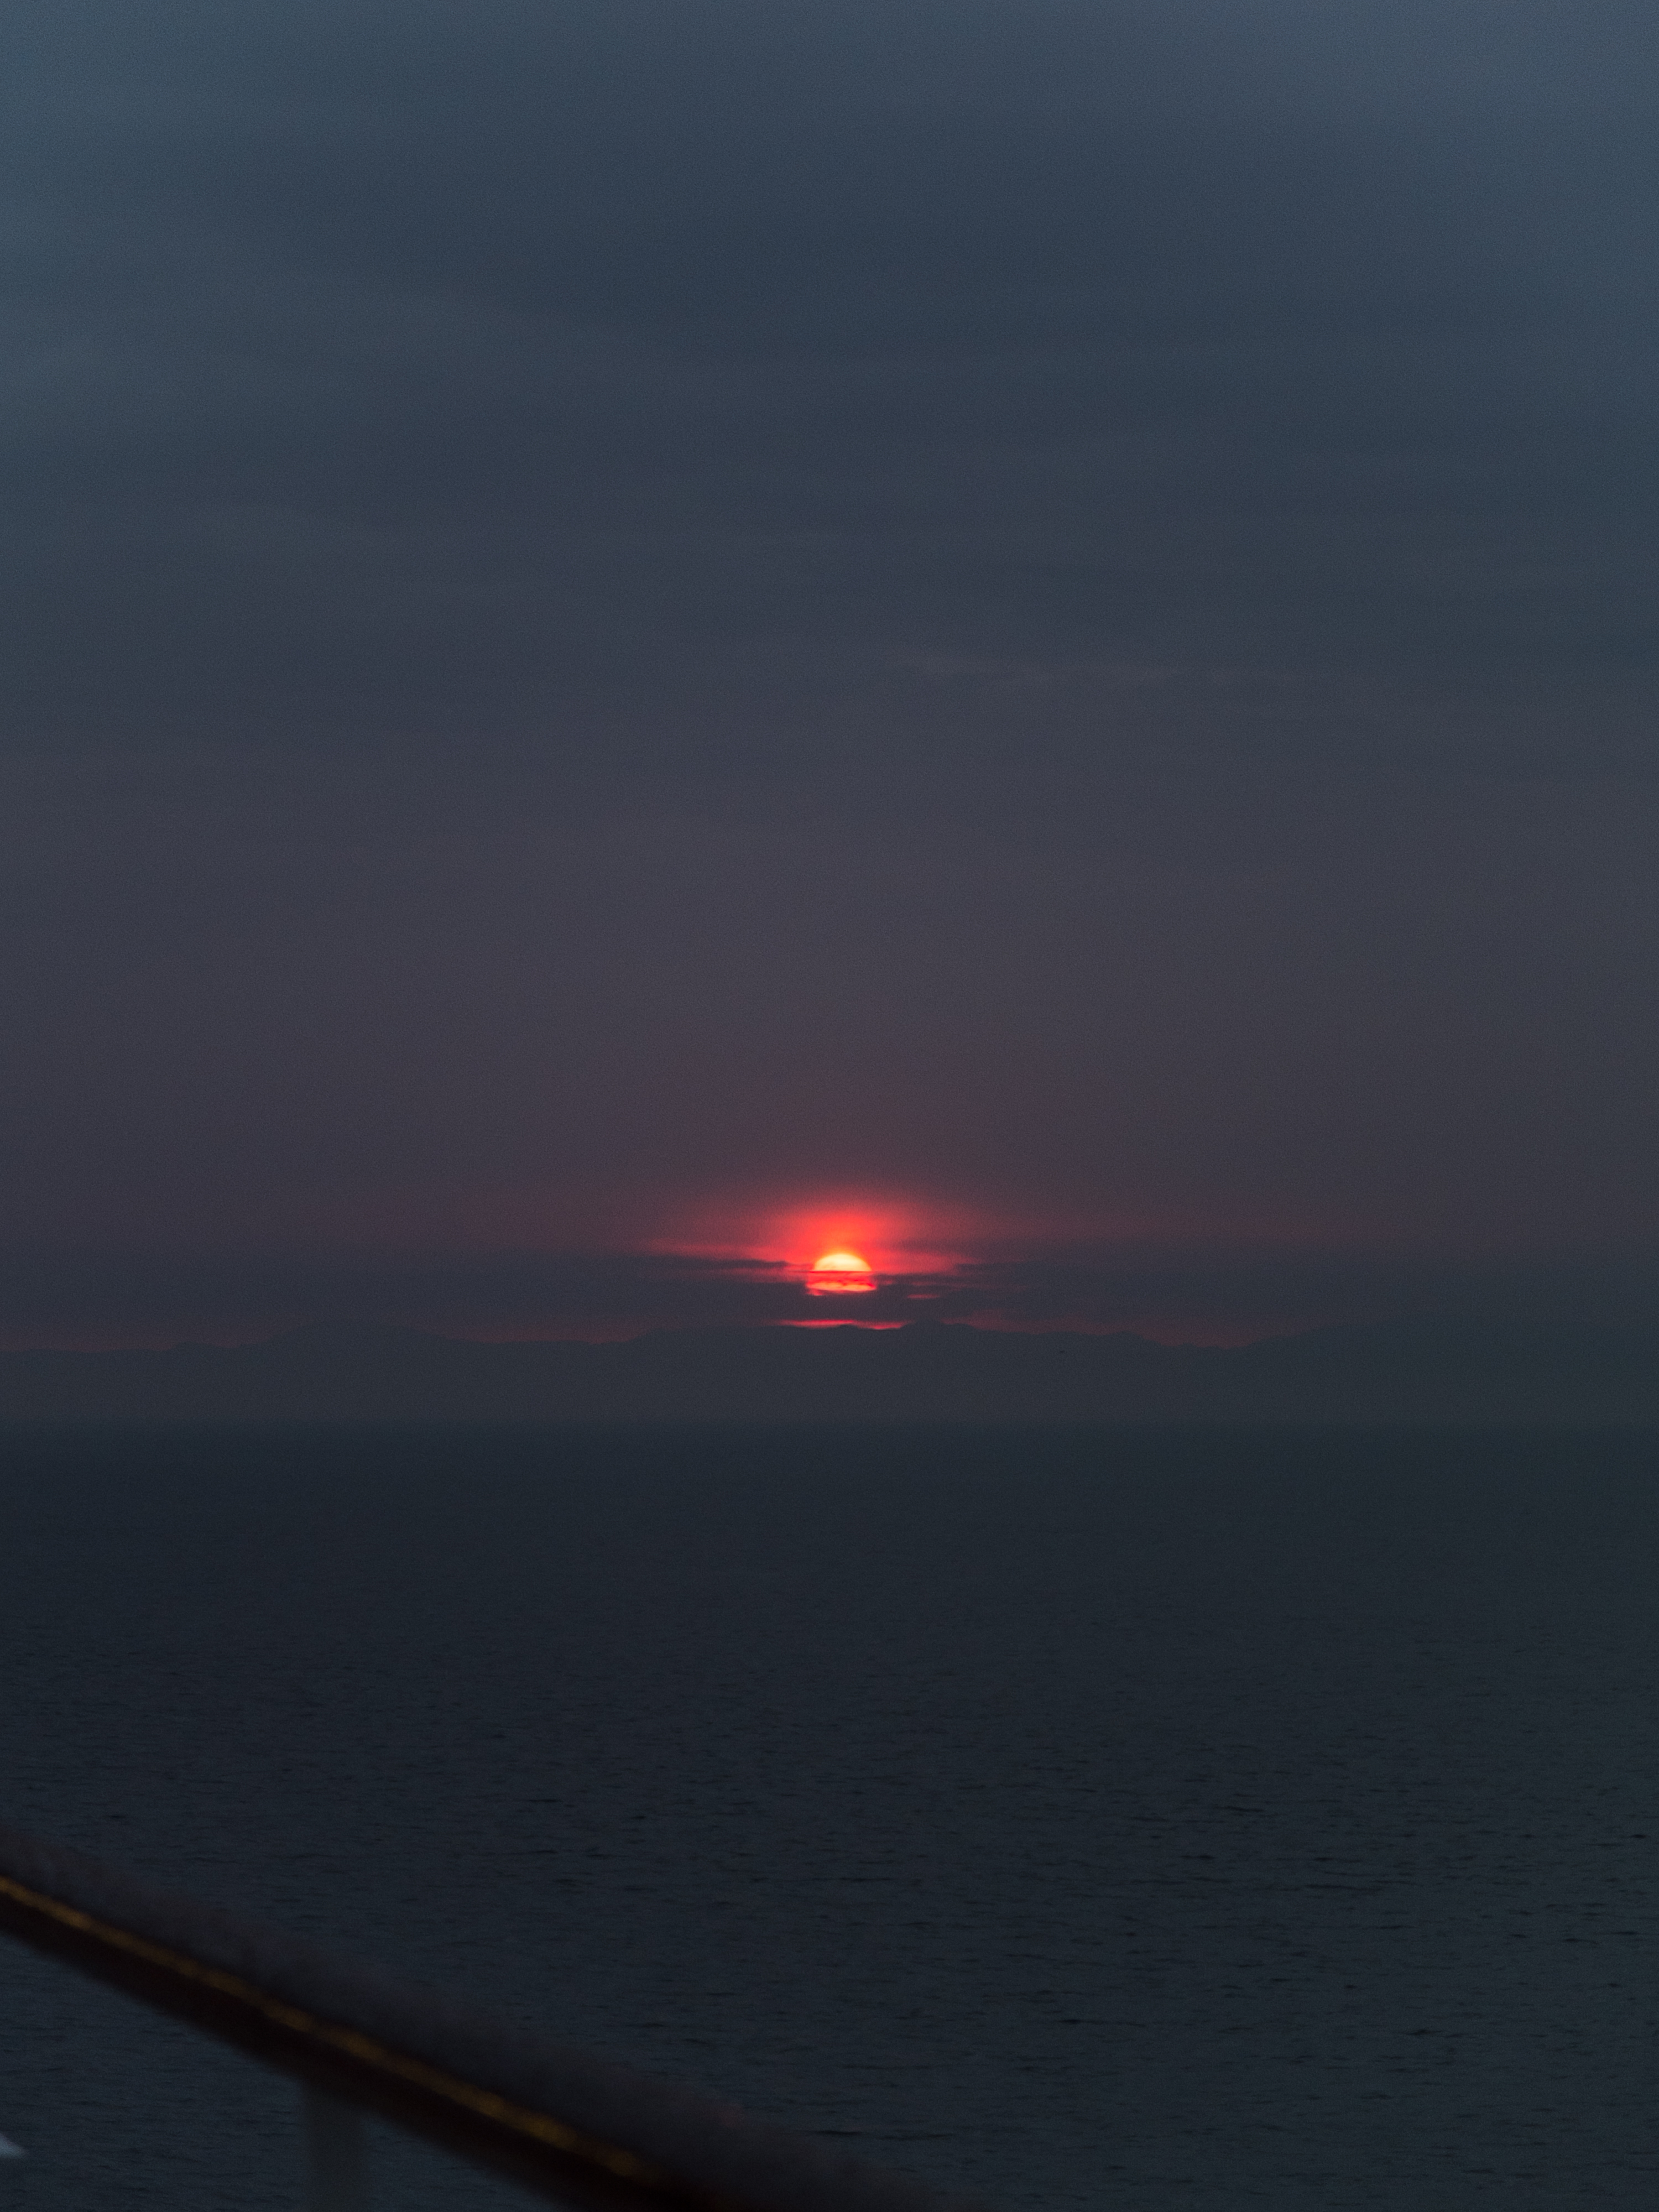 Sunrise from a cruise ship in the Strait of Gibraltar.